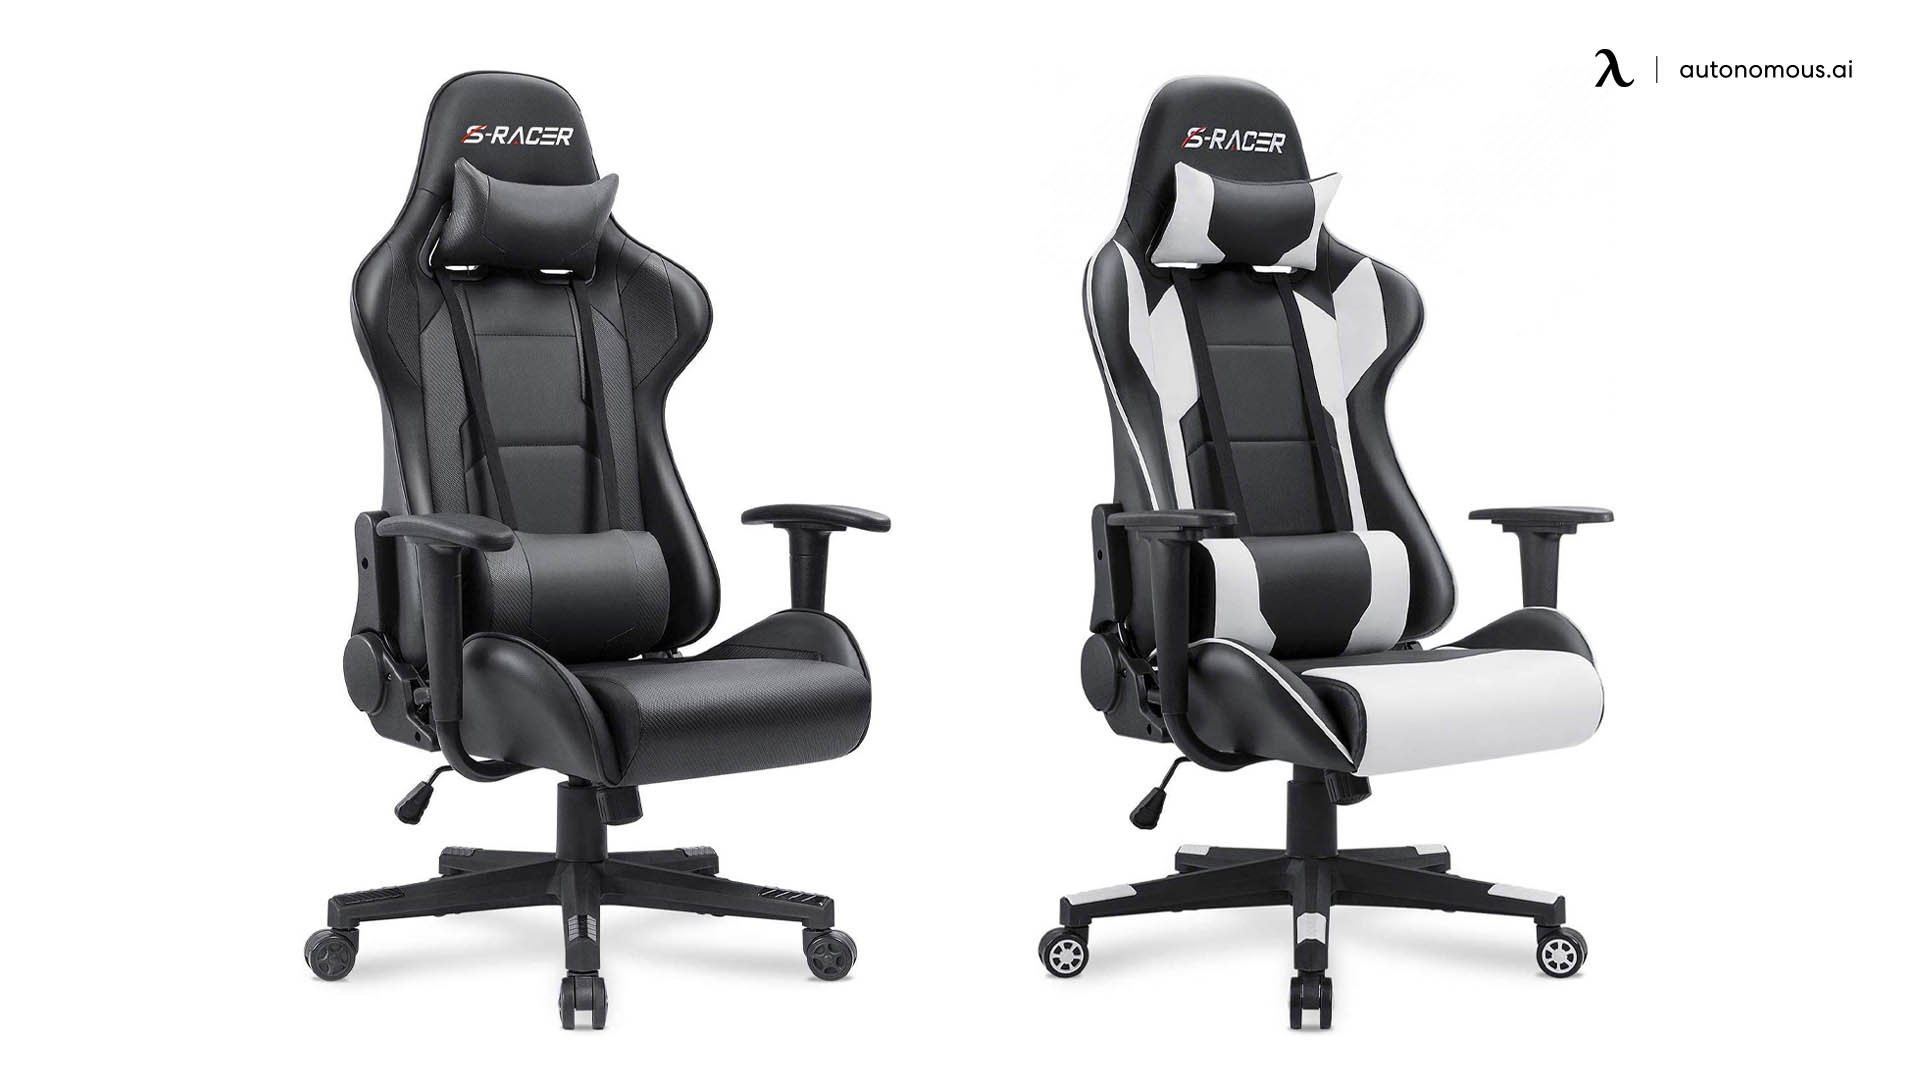 The Homall Gaming Chair